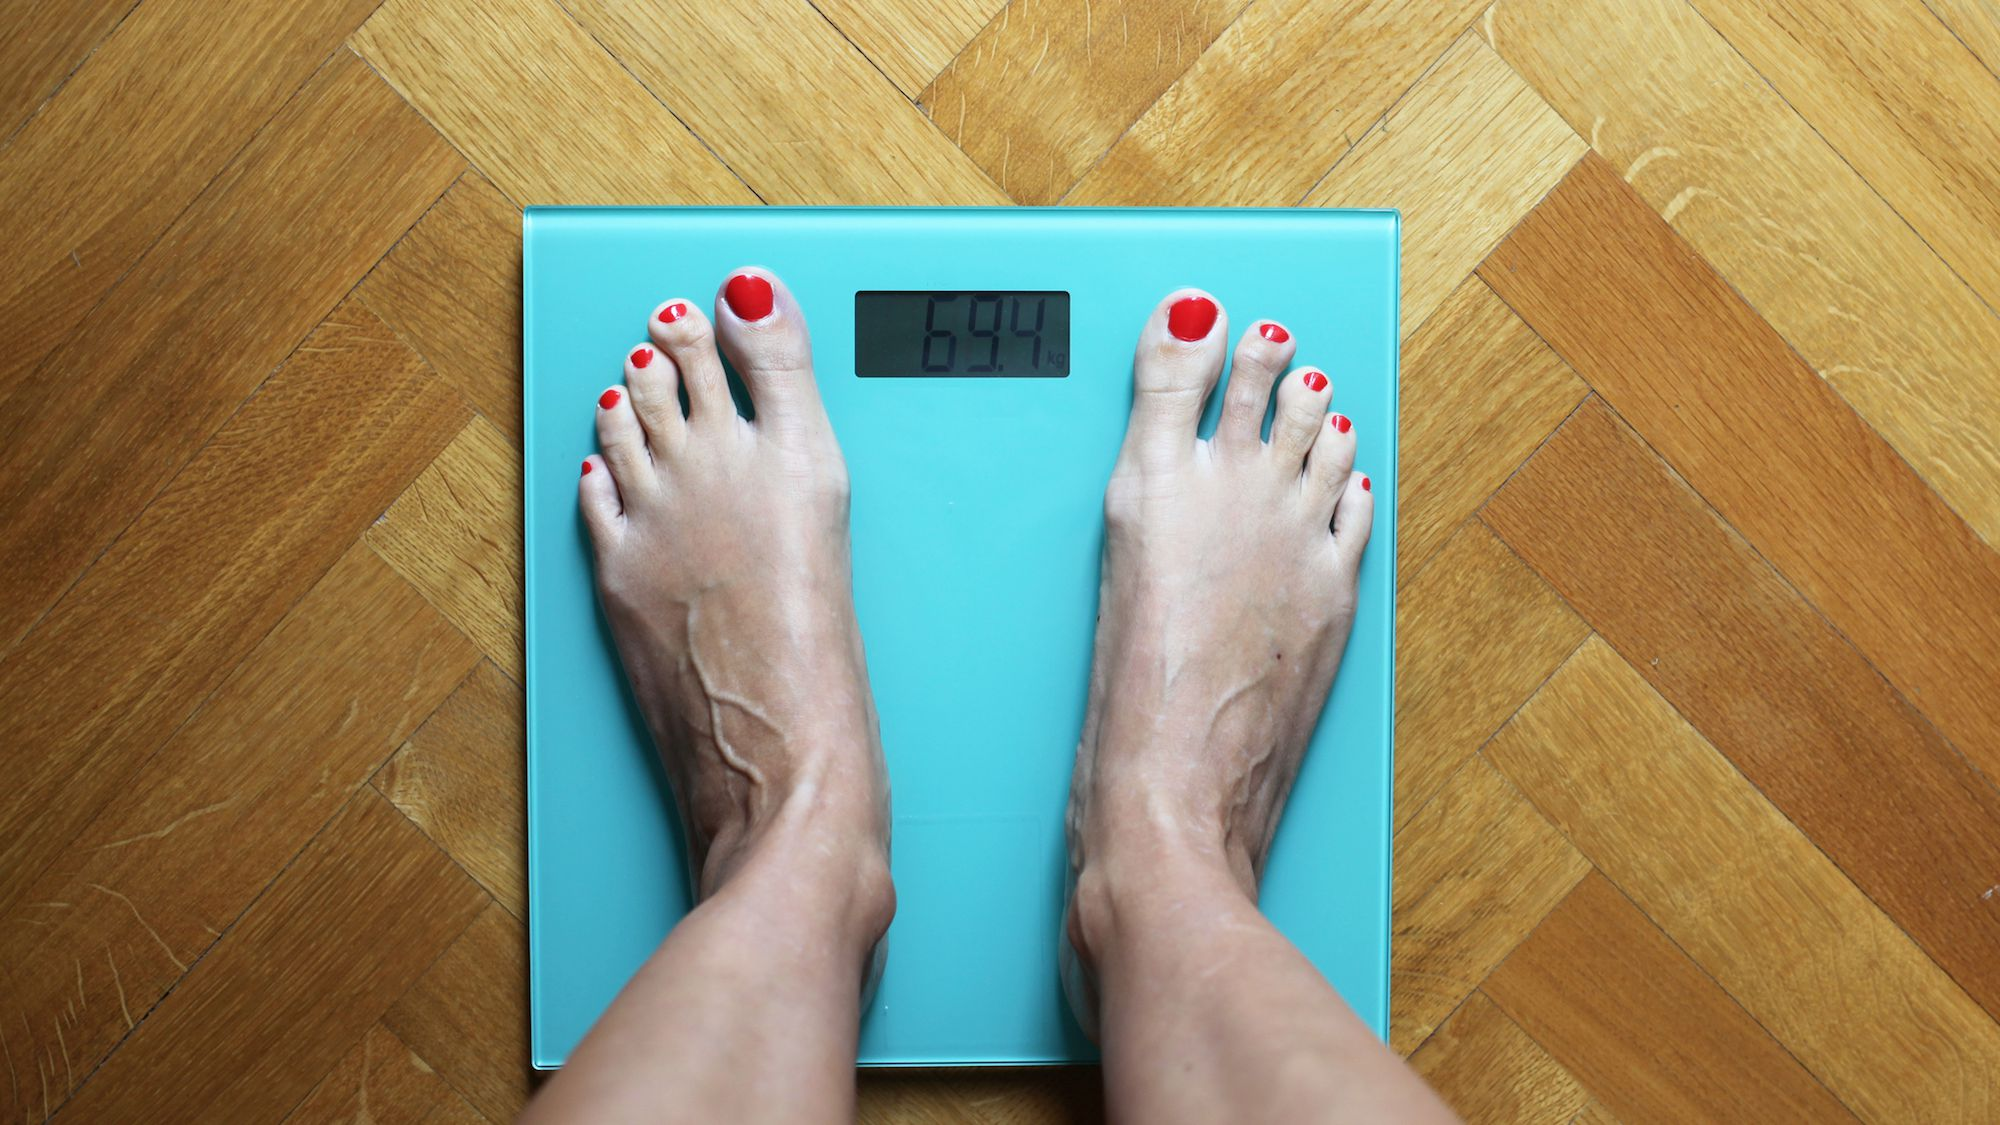 Weight Fluctuation—How Much Is Normal?